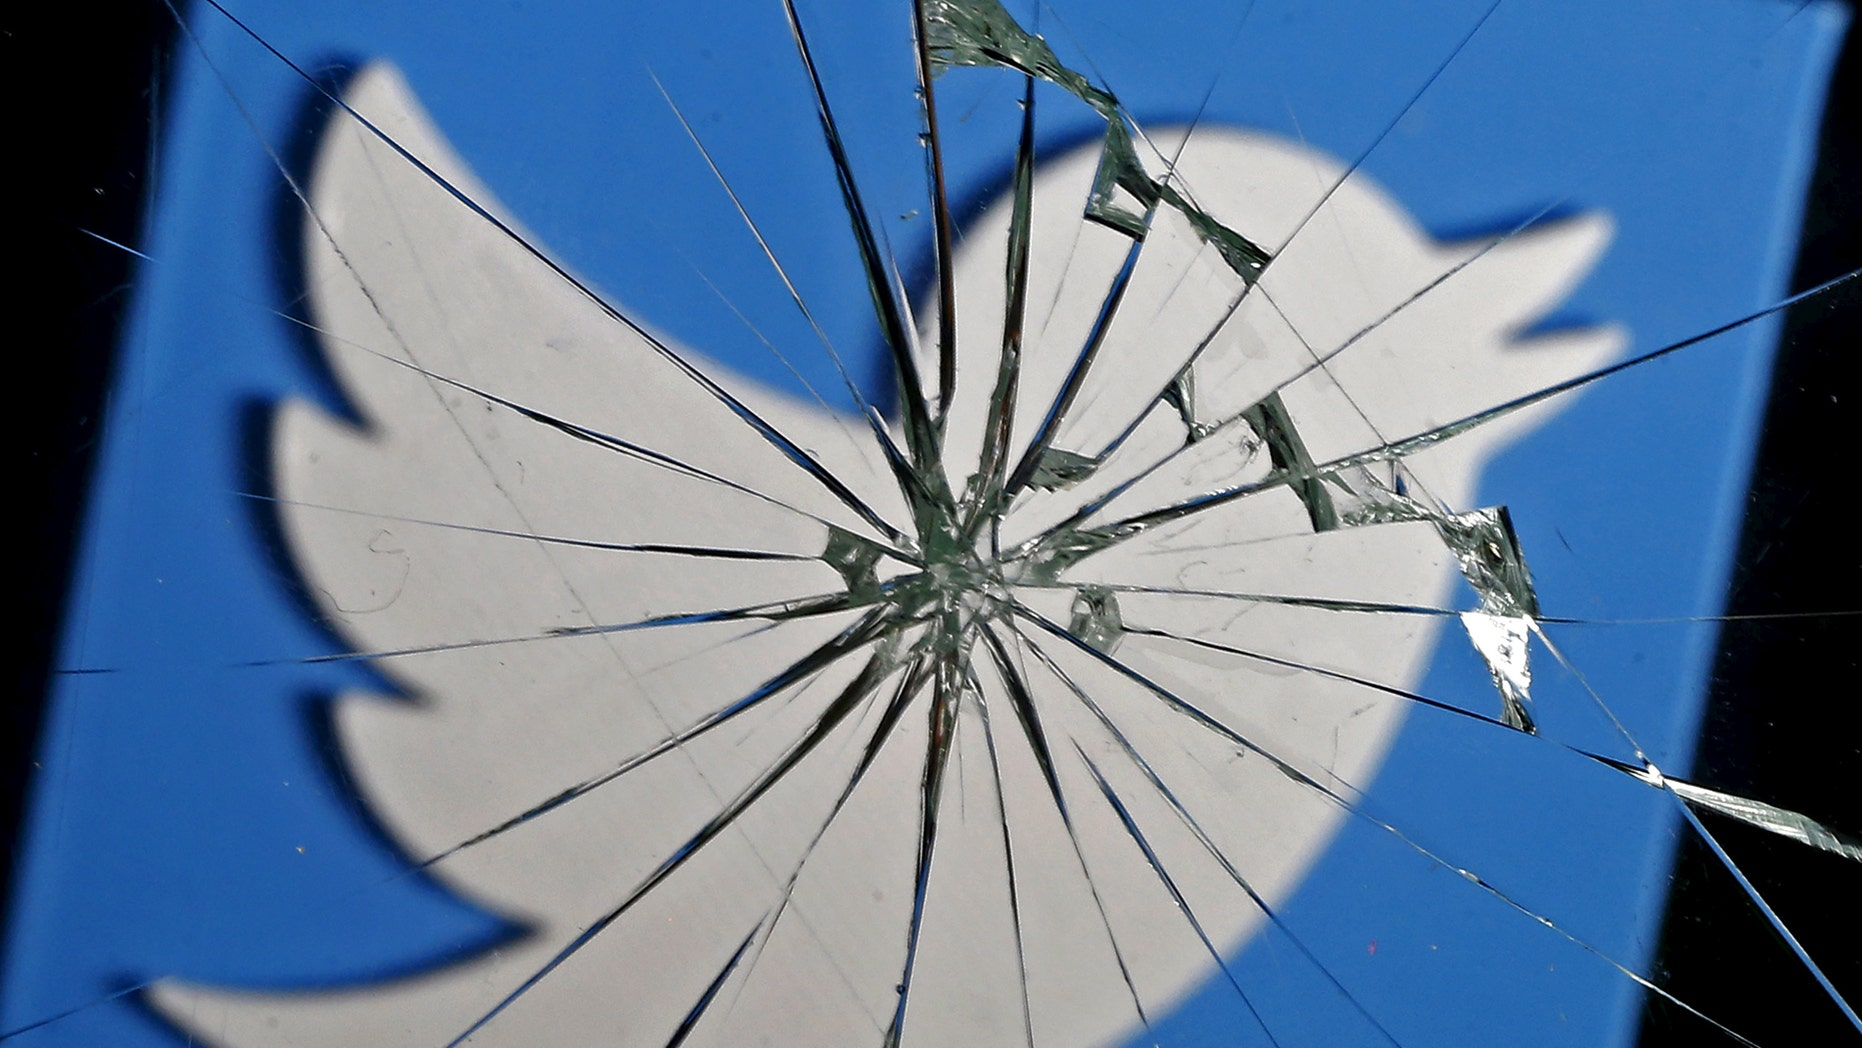 A 3D-printed Twitter logo is seen through broken glass, in this picture illustration taken February 8, 2016. (REUTERS/Dado Ruvic)